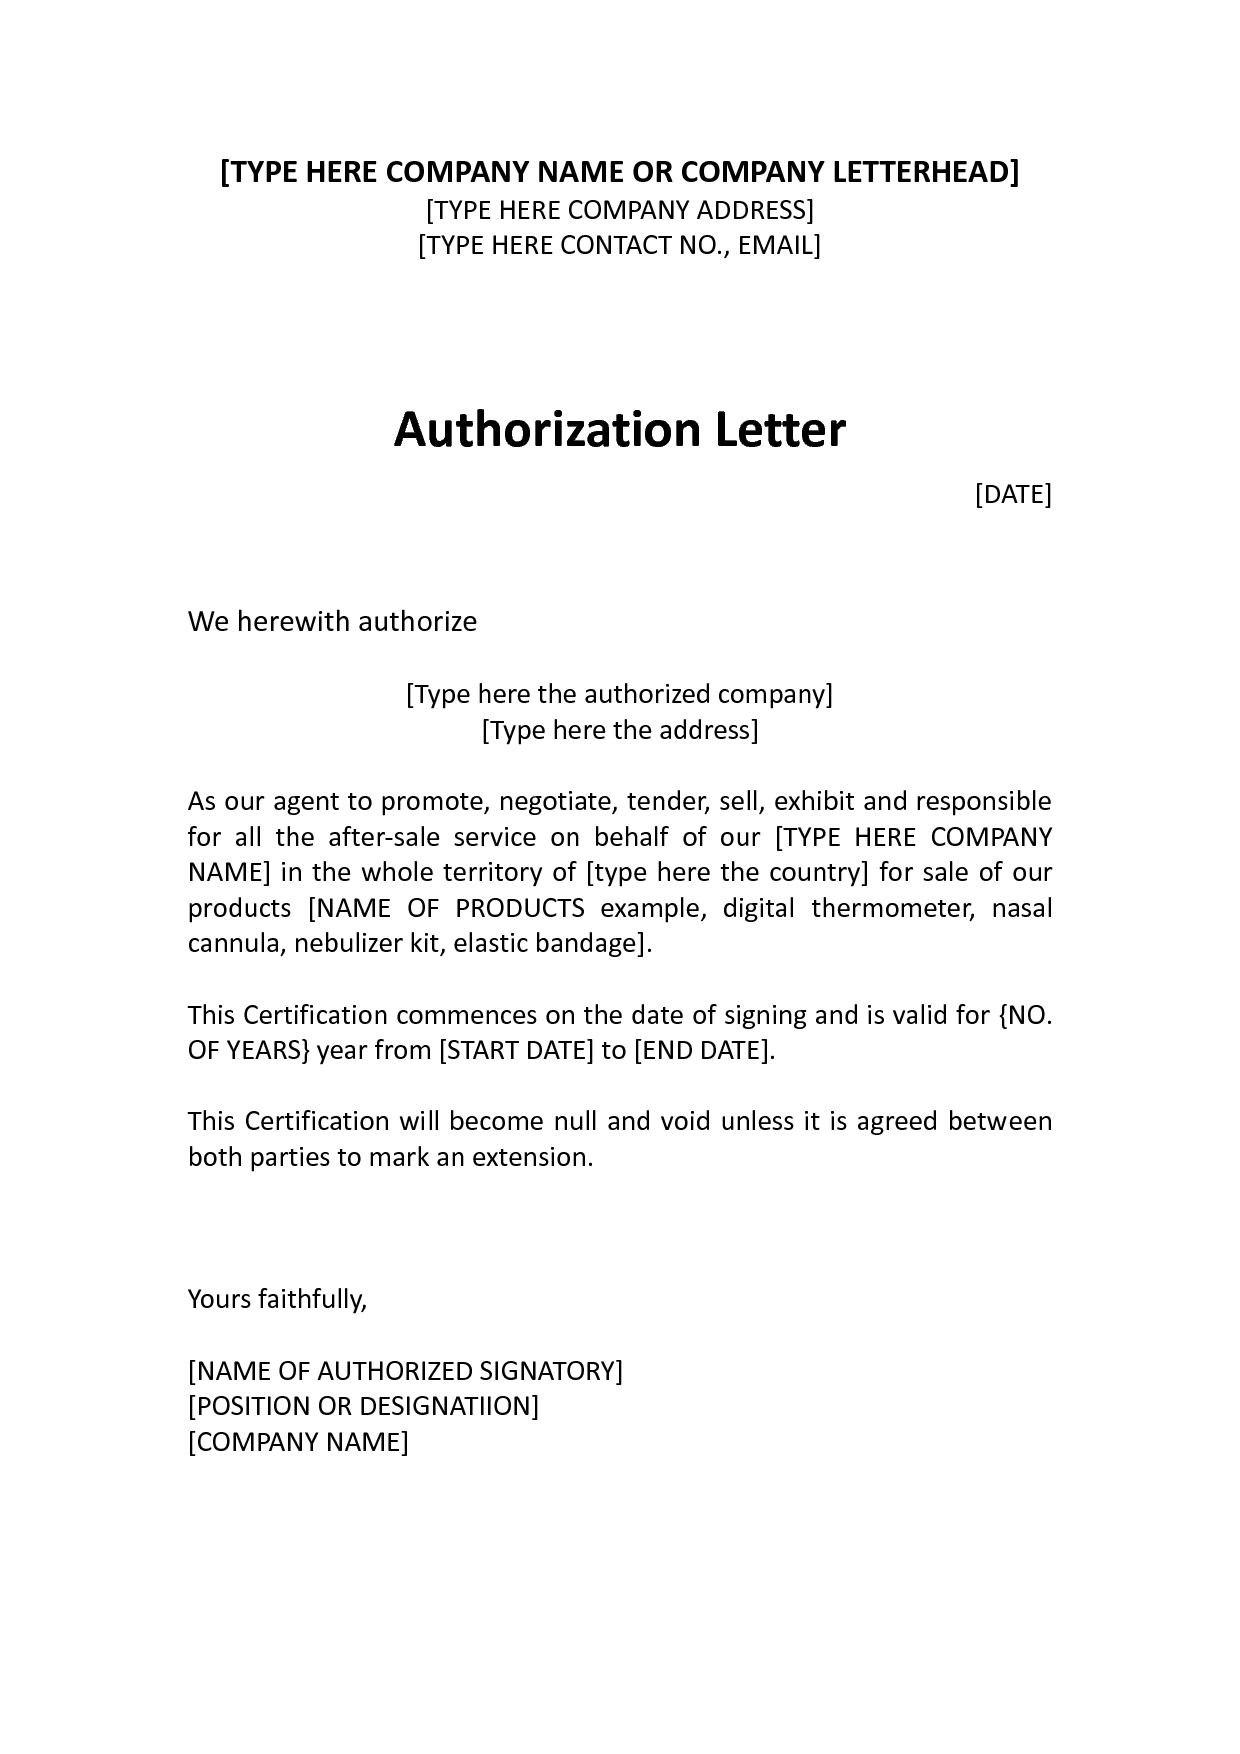 Public Record Removal Letter Template - Authorization Distributor Letter Sample Distributor Dealer